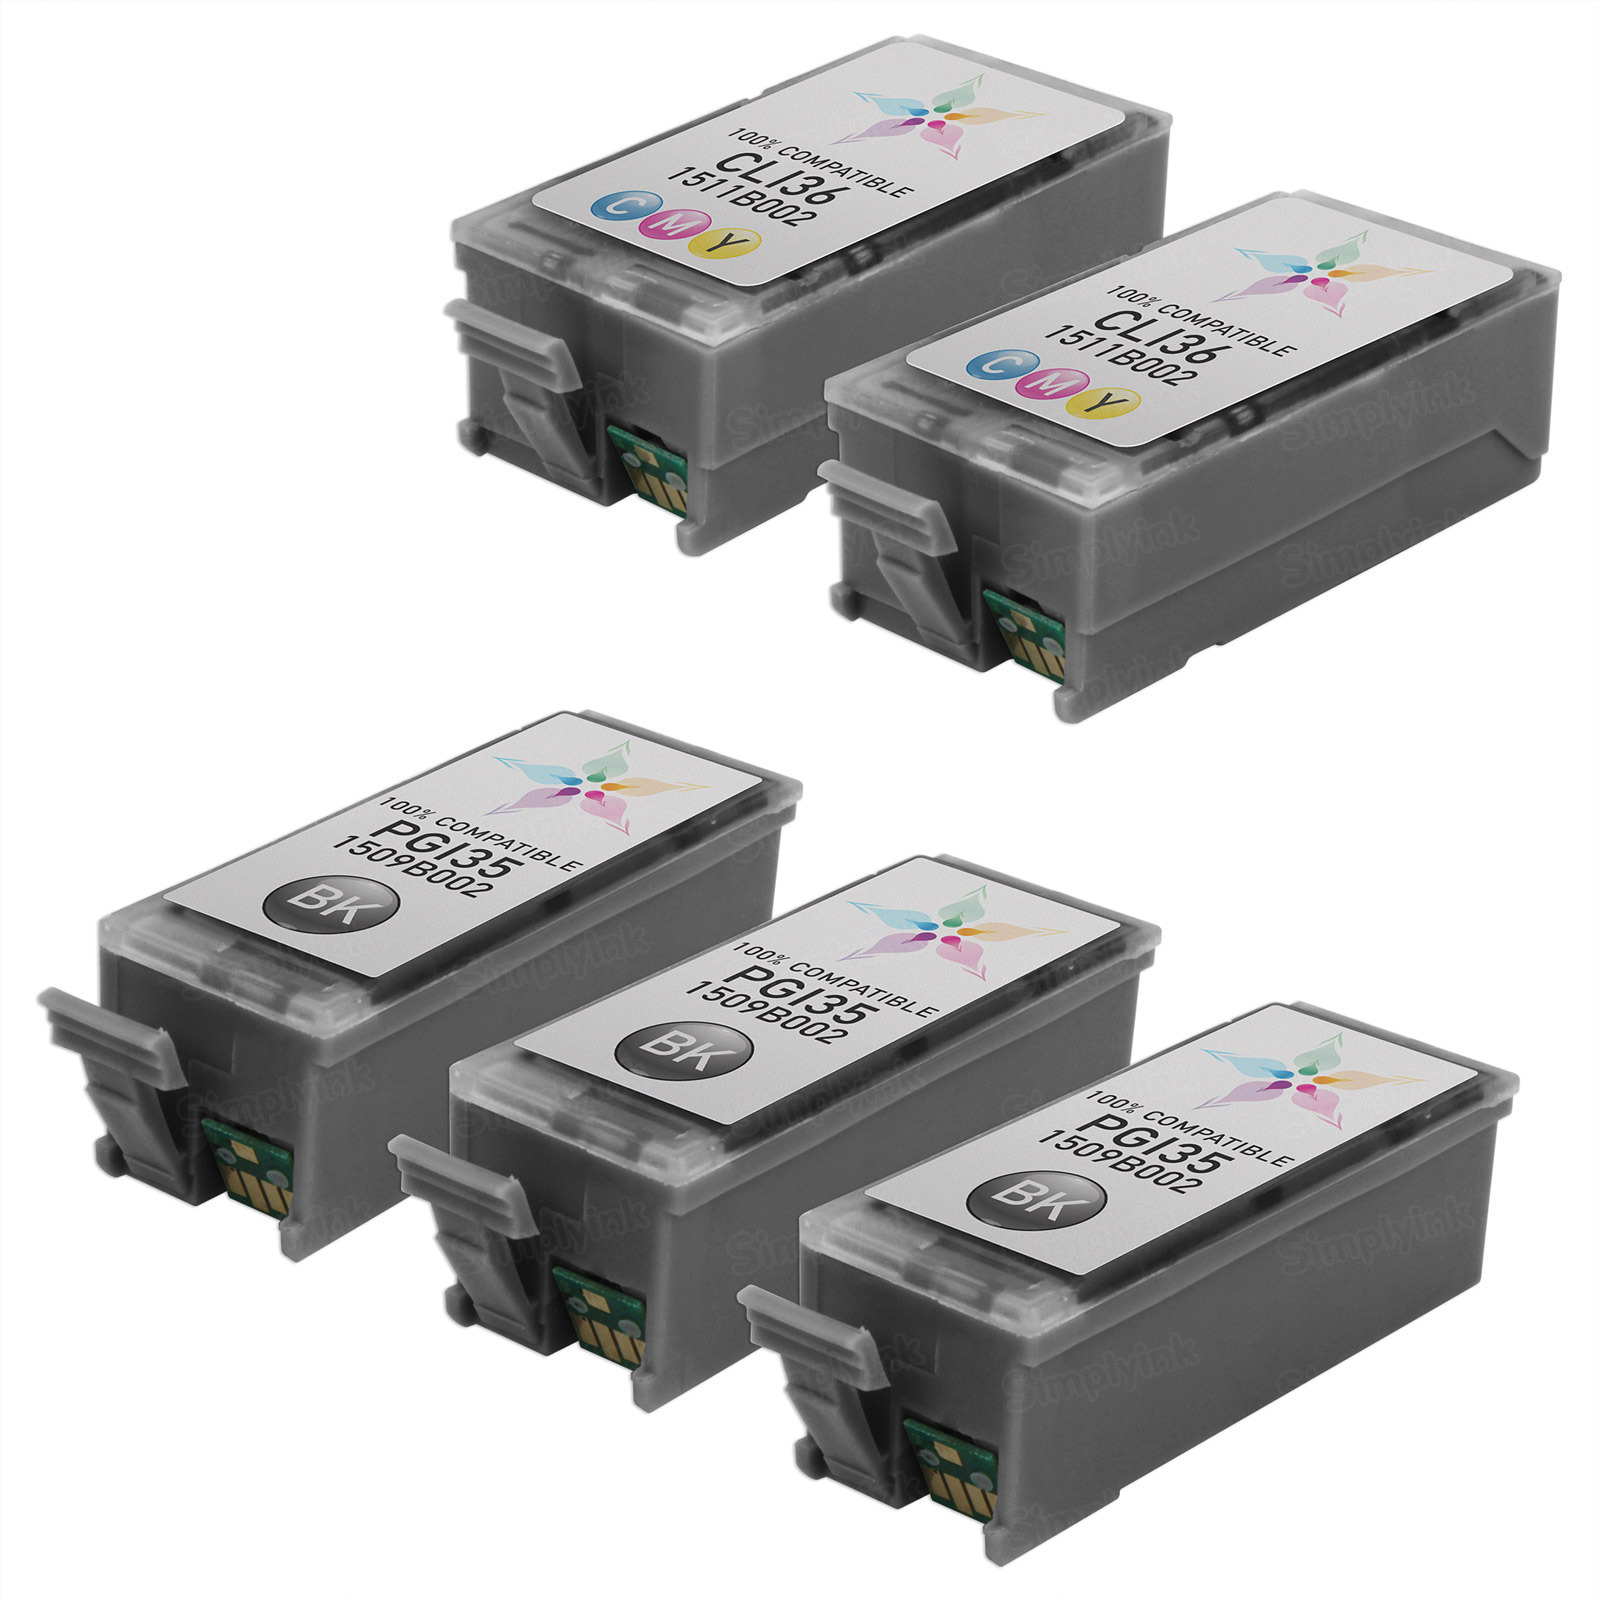 Inkjet Supplies for Canon Printers - Remanufactured Bulk Set of 5 Ink Cartridges - 3 Black Canon PGI-35 (1509B002) and 2 Color Canon CLI-36 (1511B002)